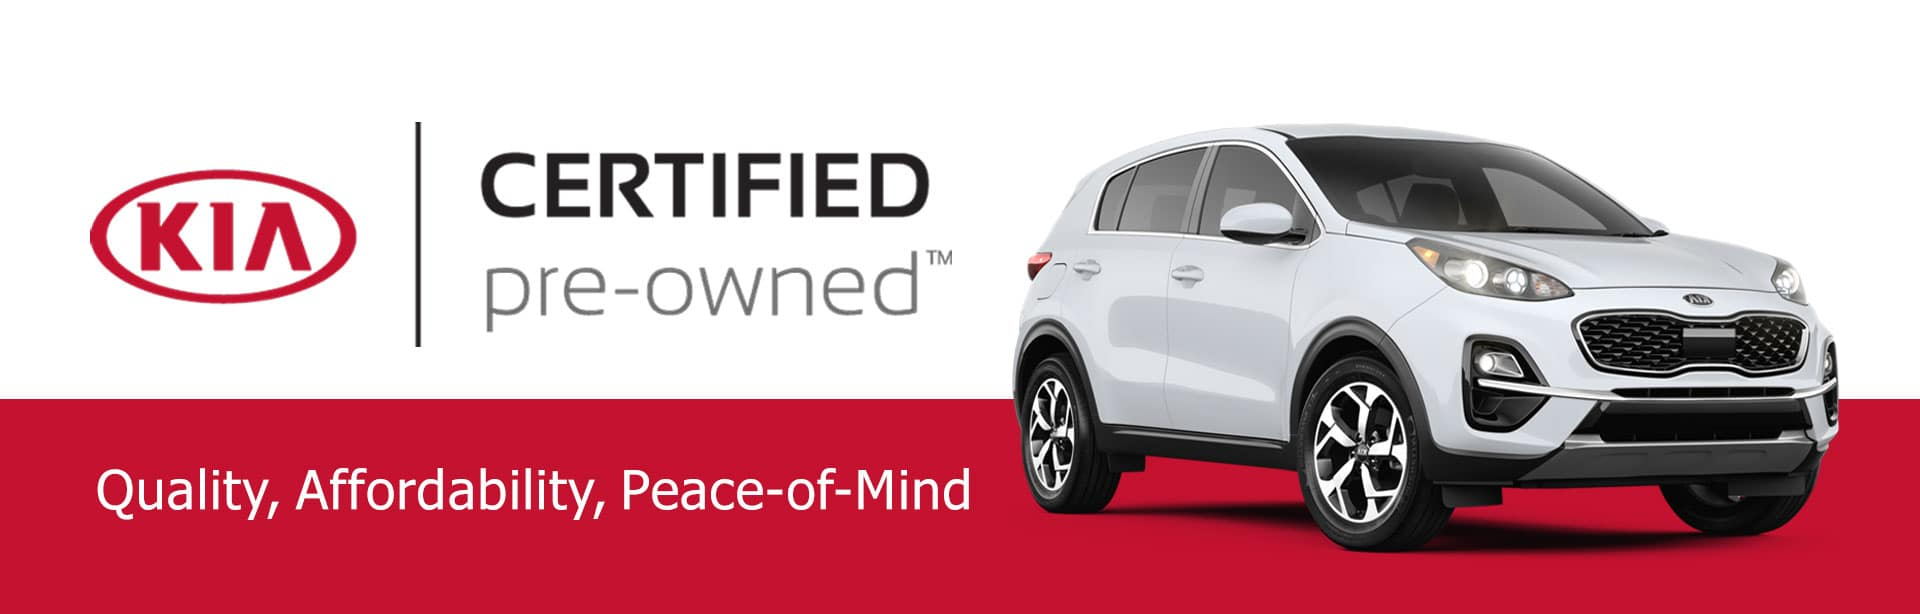 Kia Certified Savings- Kia Delray